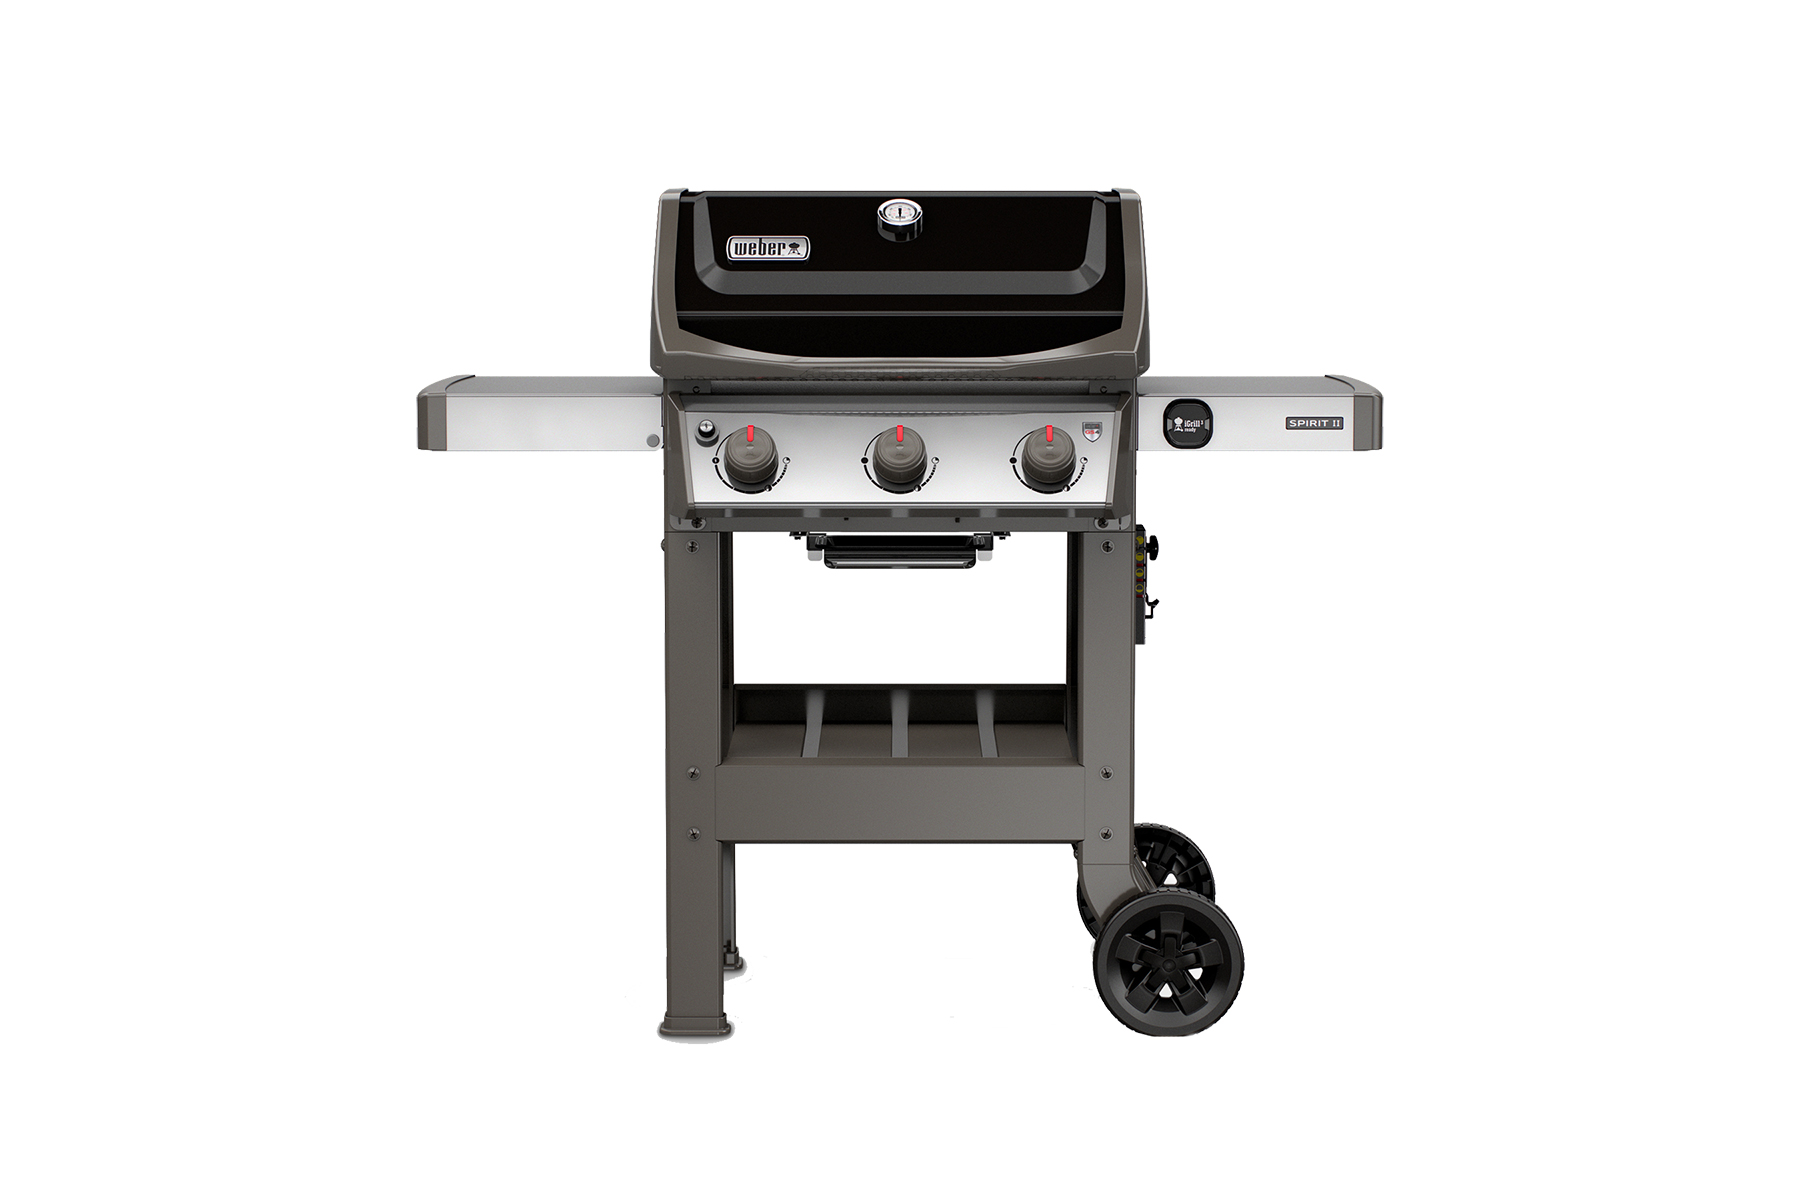 Best Propane Gas Option: Weber Spirit II E 310 Propane Gas Grill